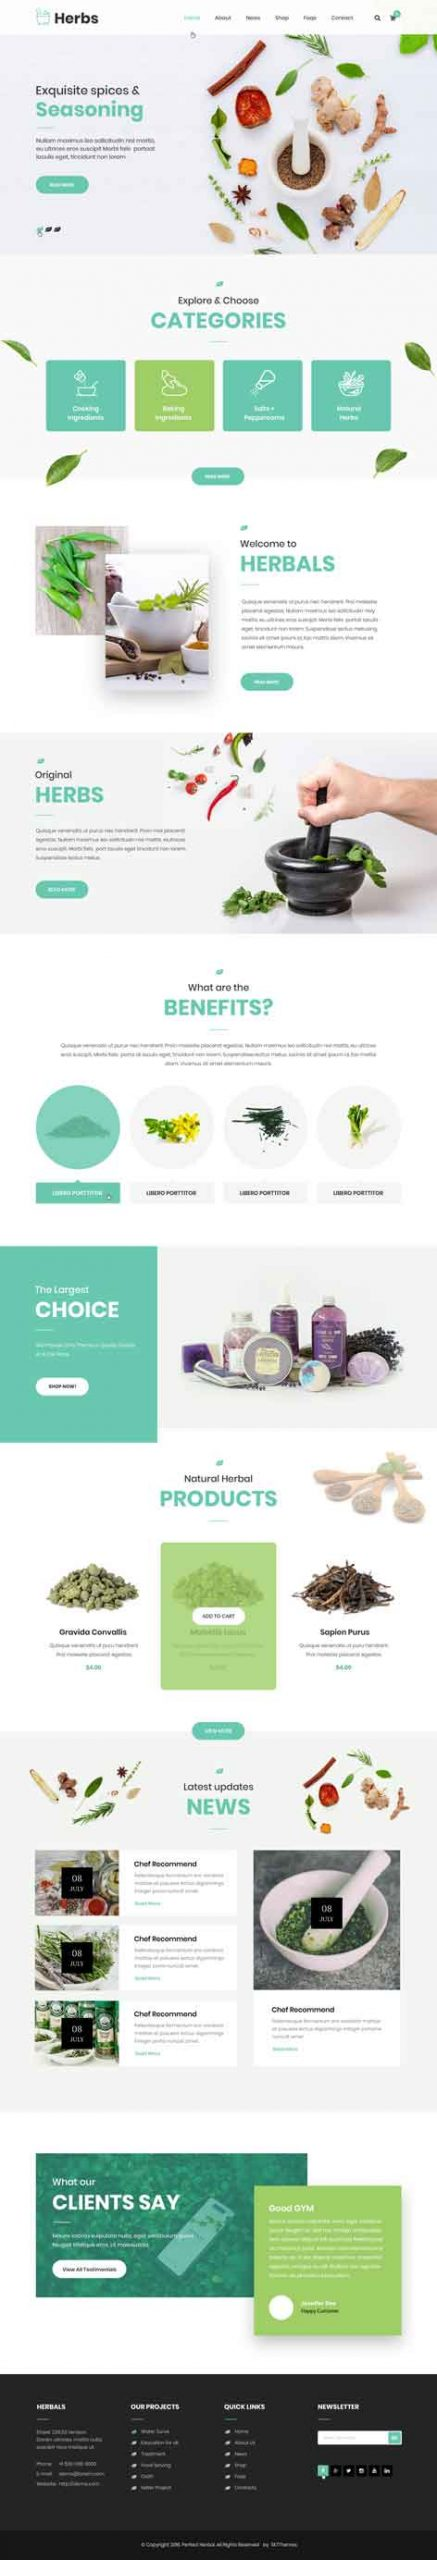 herbal store WordPress theme